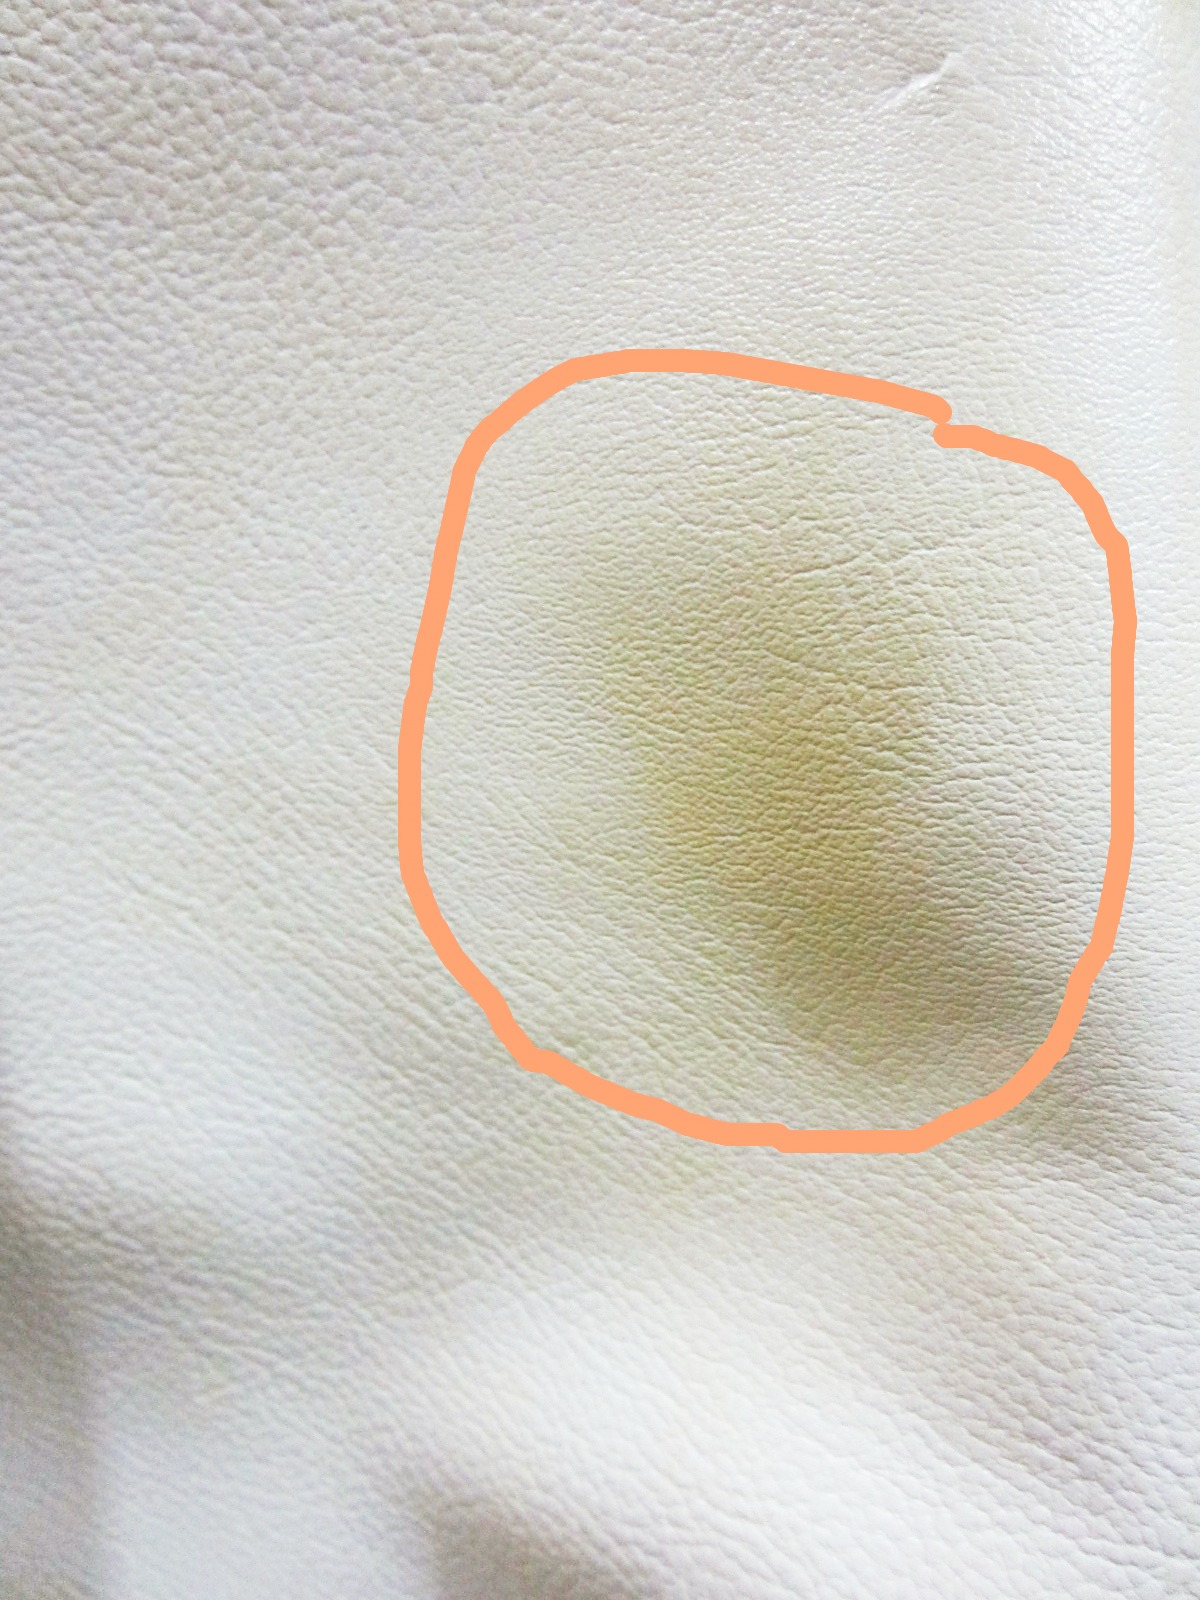 how to clean yellow perspiration stains